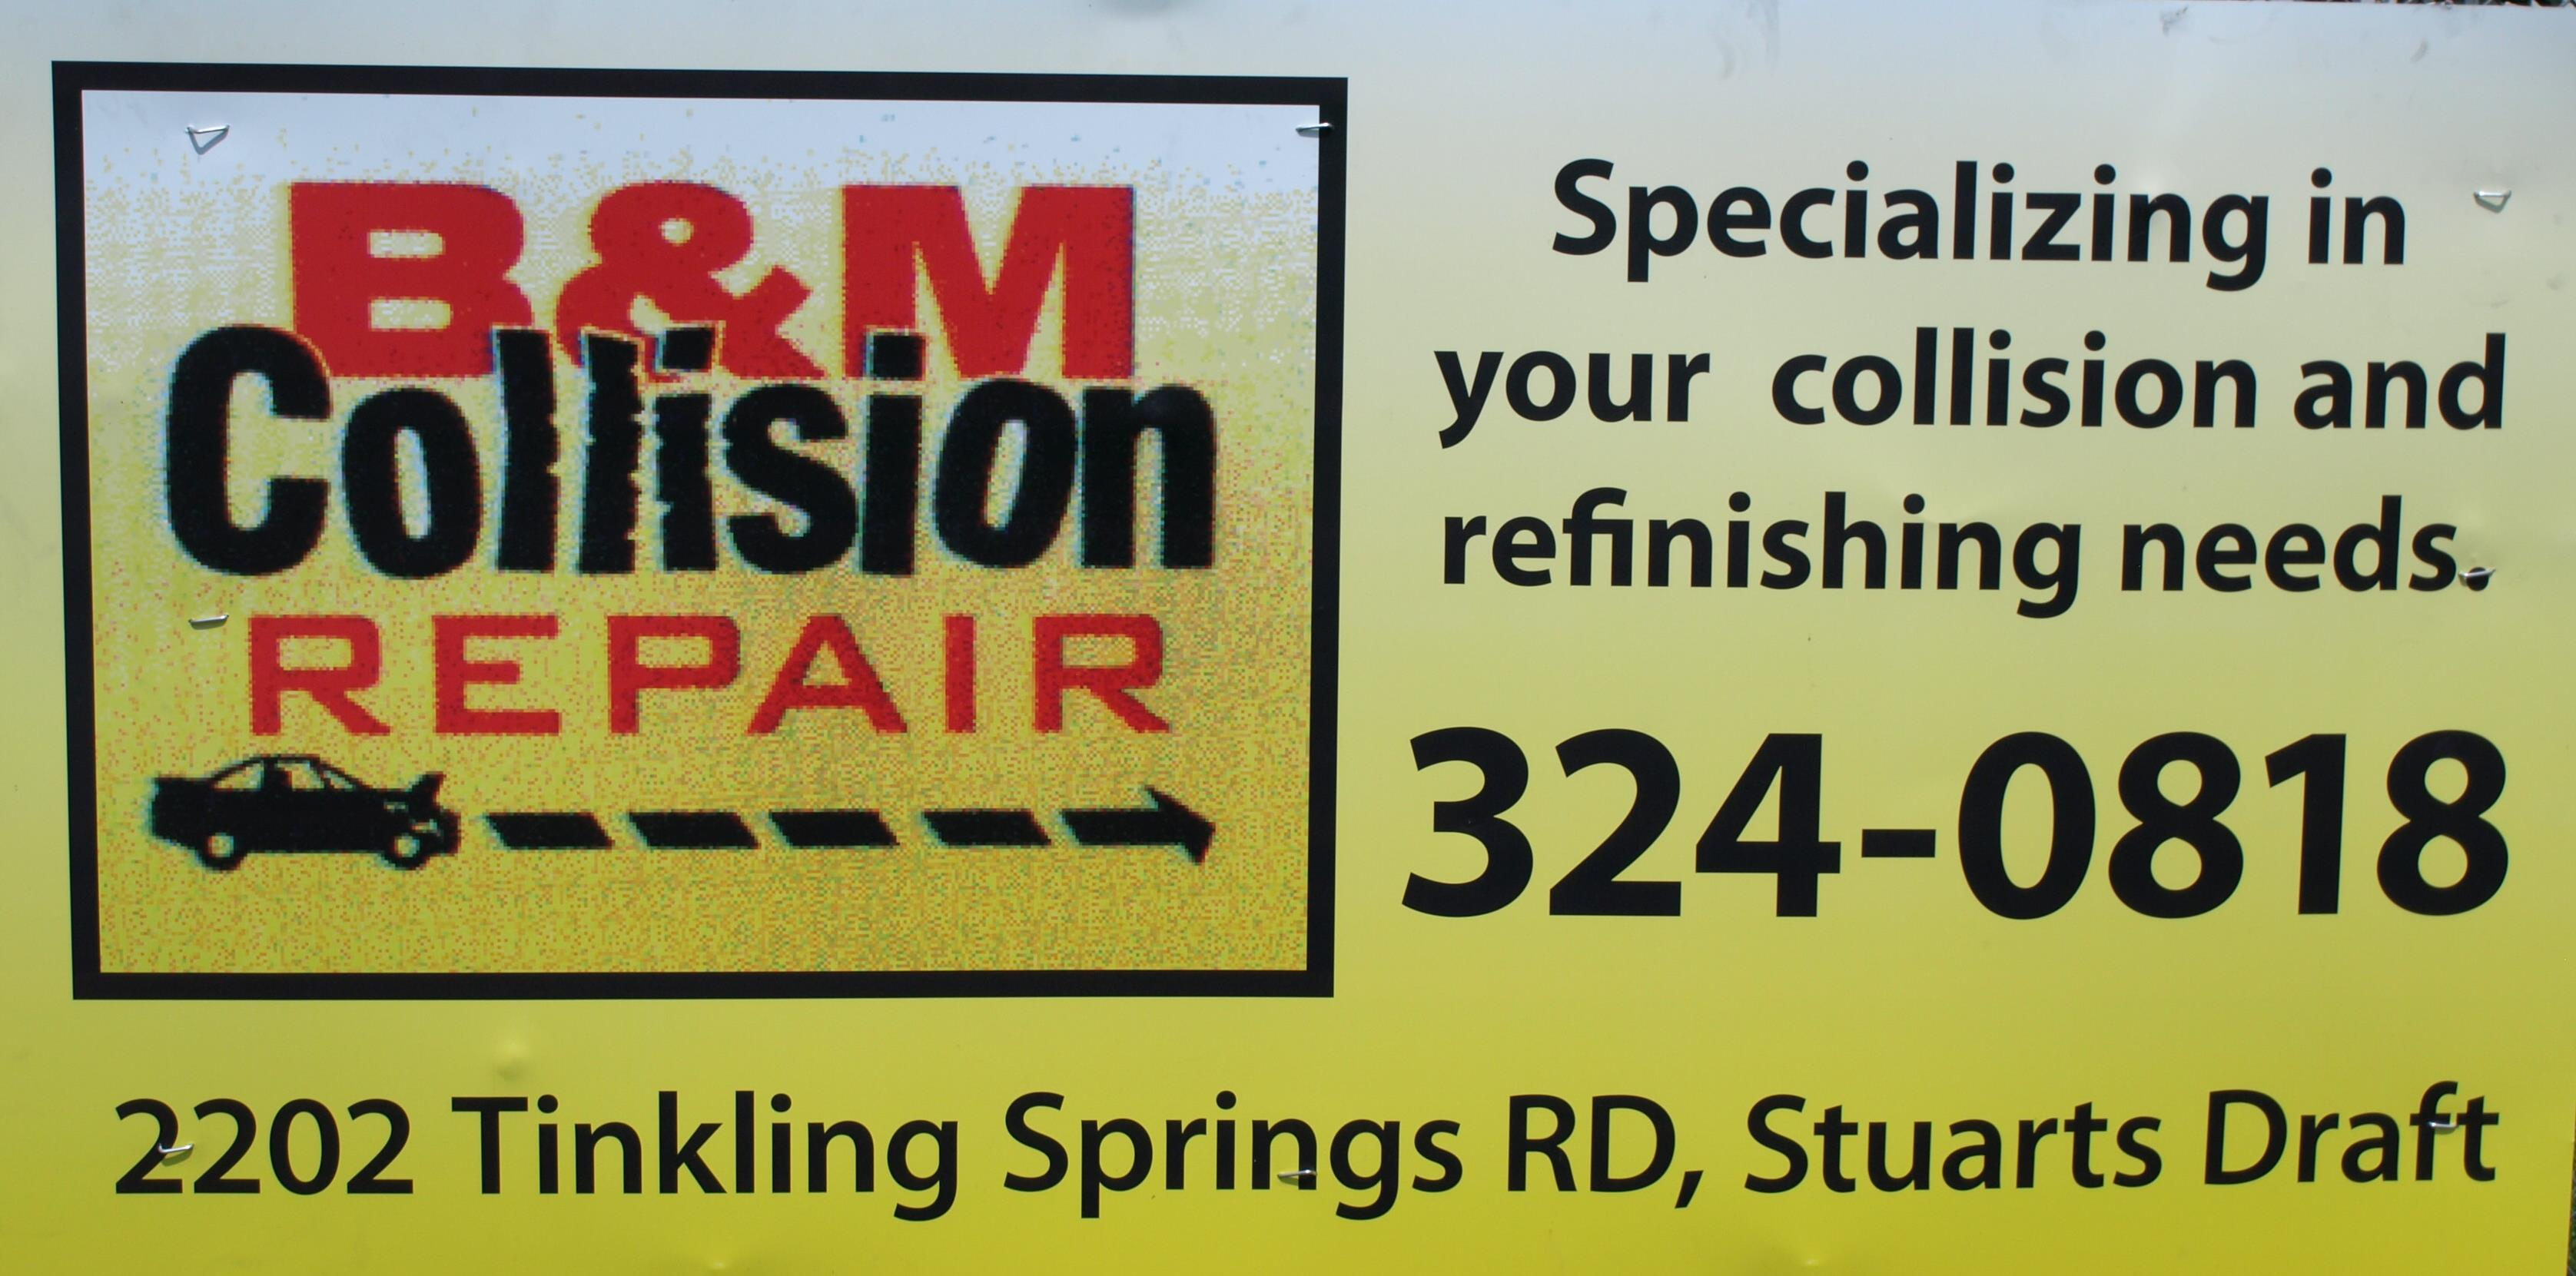 B & M Collision Repair